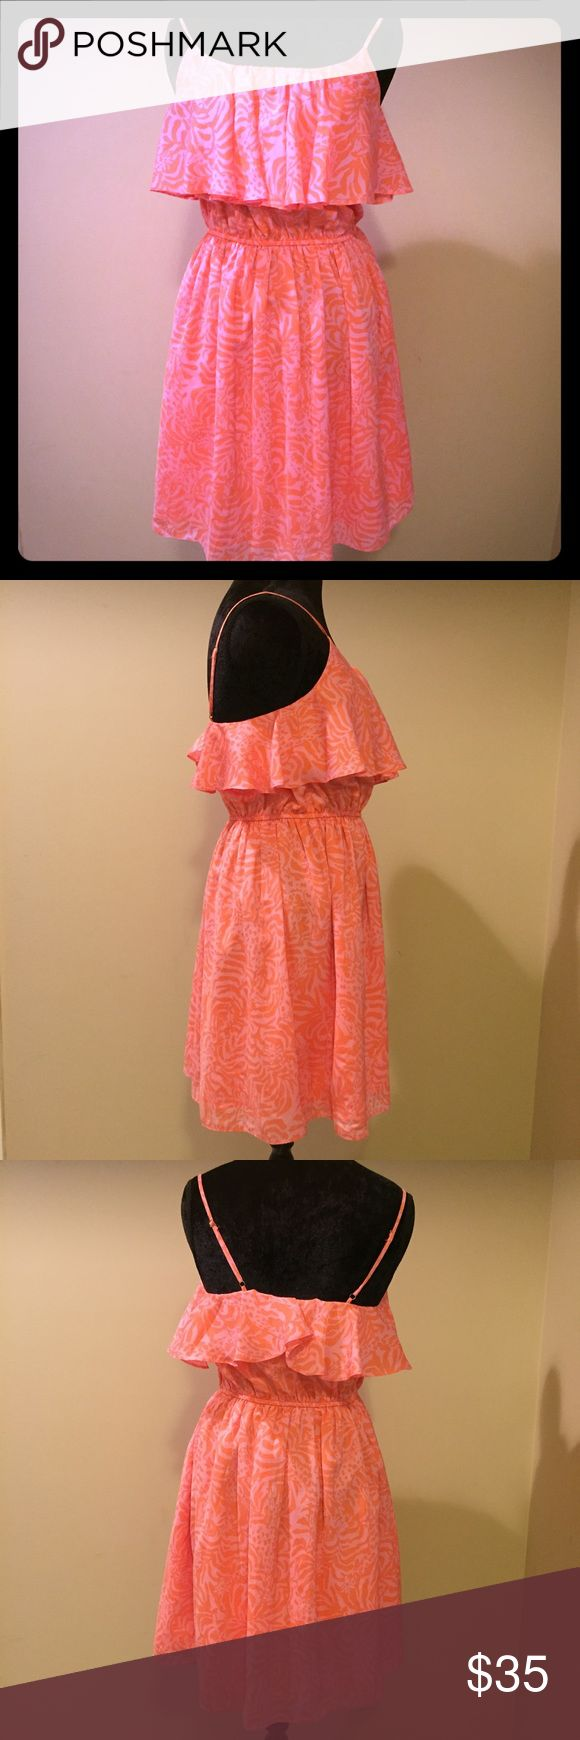 Lilly Pulitzer Dress Lilly Pulitzer for Target dress for sale! Cute pink giraffe print and fabulous soft material. The straps are fully adjustable and the waist has some elastic to fit a wide range of sizes. Even though I usually wear a L/XL I can still fit this! NWOT. I have never worn this! Lilly Pulitzer Dresses